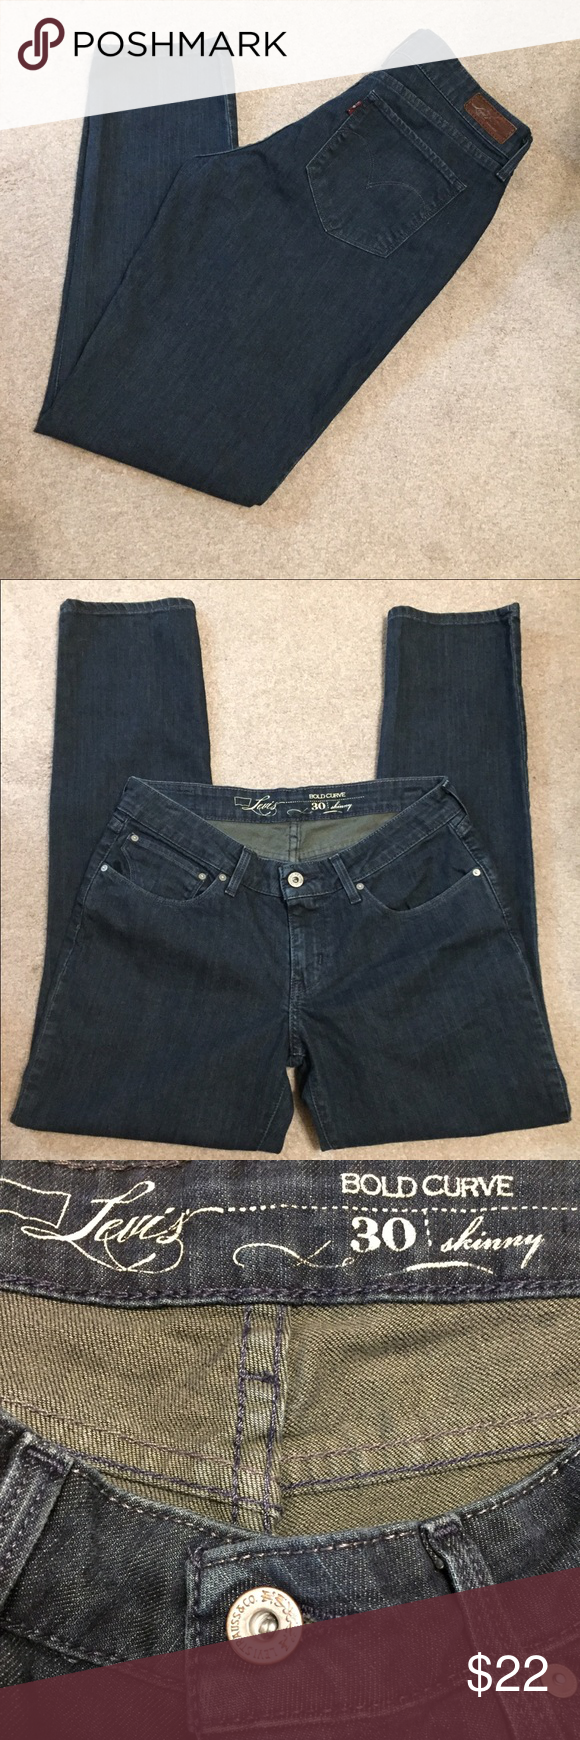 "Levis💥I ❤ offers💥 Bold curve. Skinny. Size 30. Inseam 28.5"".  (34) Levi's Jeans Skinny"